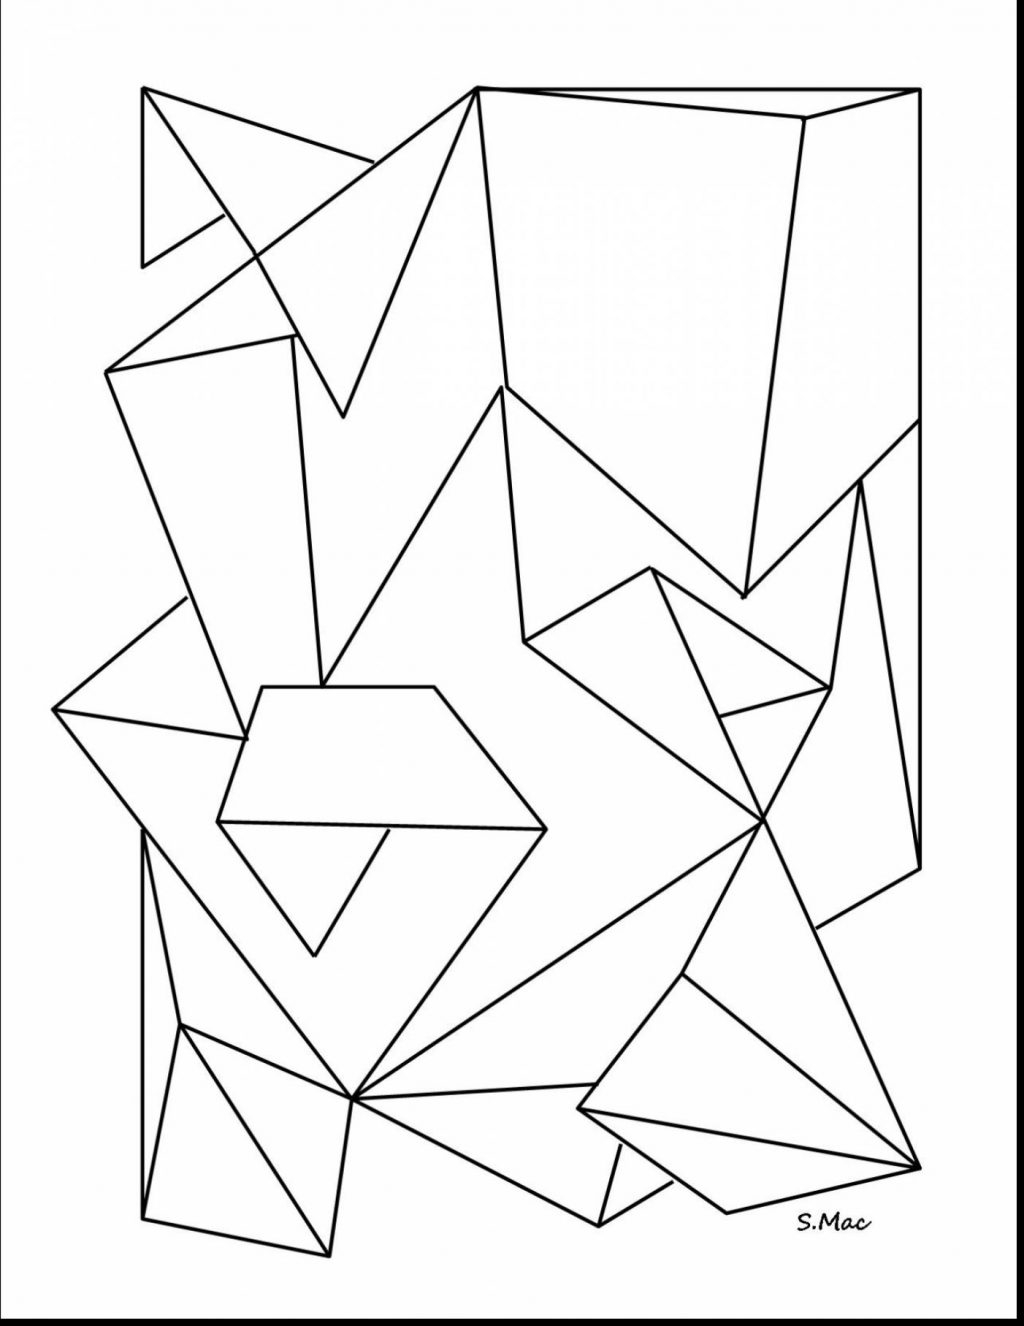 Coloring Book and Pages Classy Geometric Coloring Pages for Adults Collection Of Stress Relief Coloring Pages Animals Funny Coloring Pages Printable